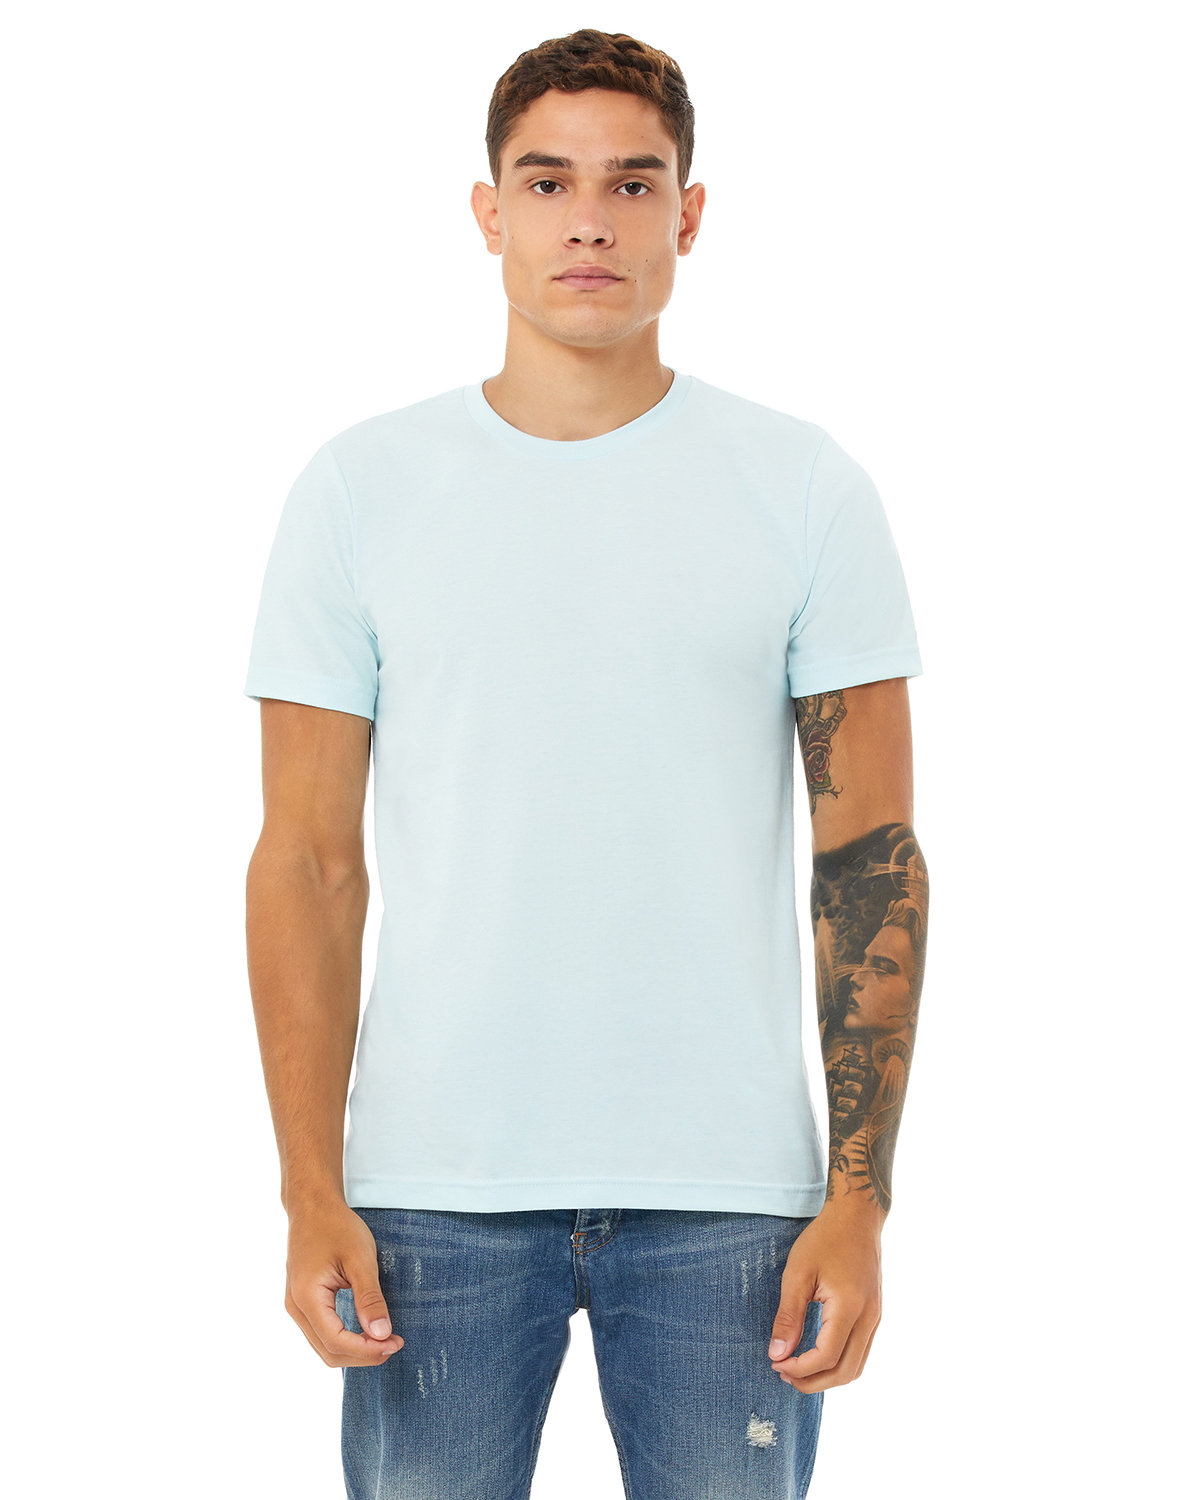 Bella + Canvas Unisex Heather CVC T-Shirt HEATHER ICE BLUE